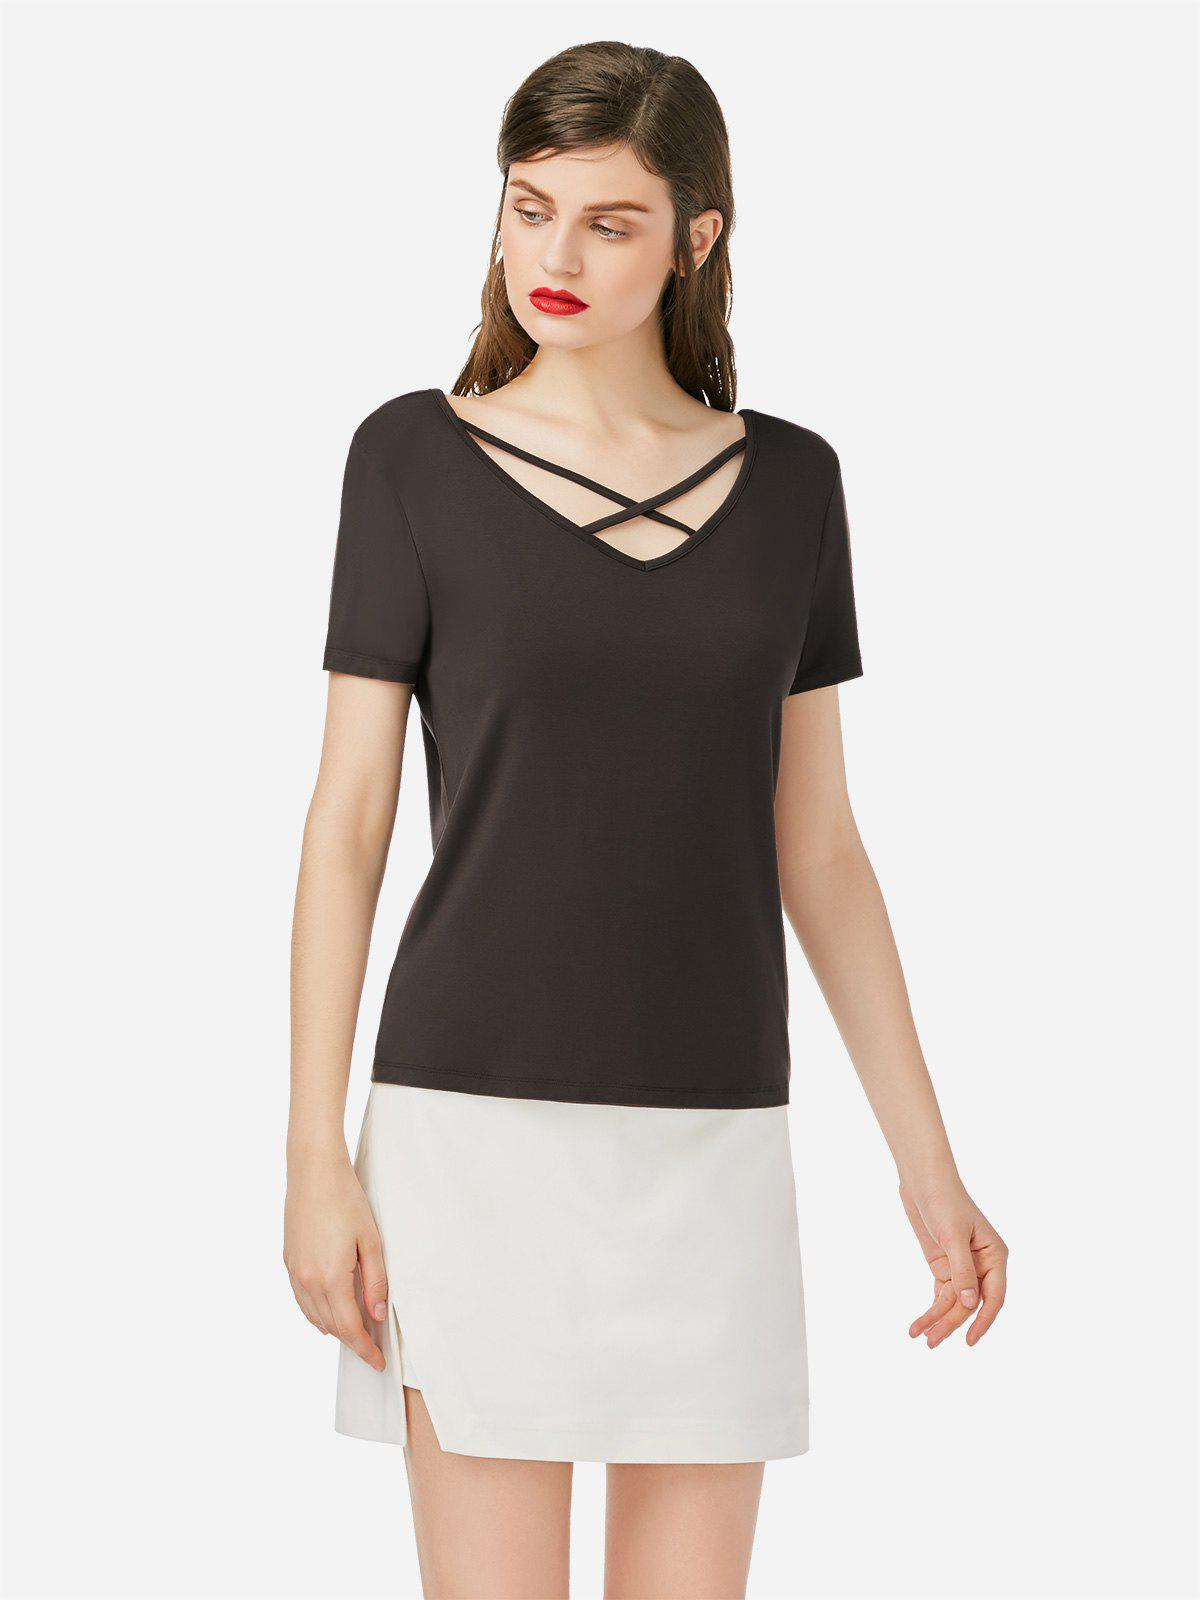 Lace Up V Neck T-shirt - COFFEE S